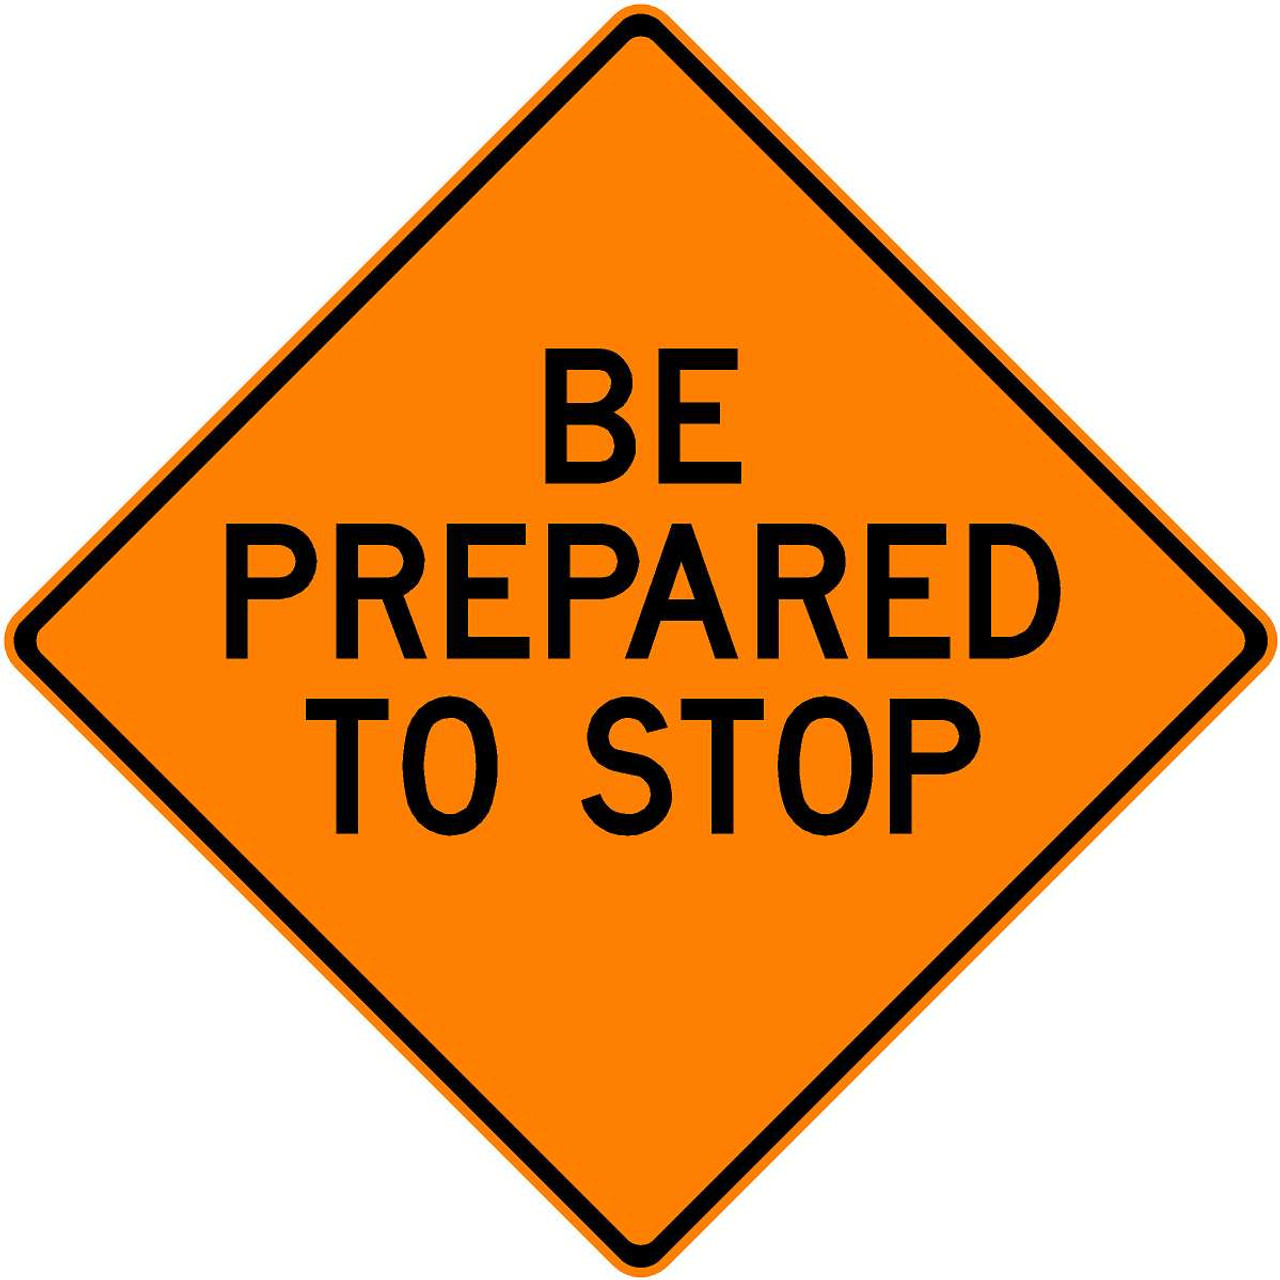 "BE PREPARED TO STOP - 48"" VINYL"